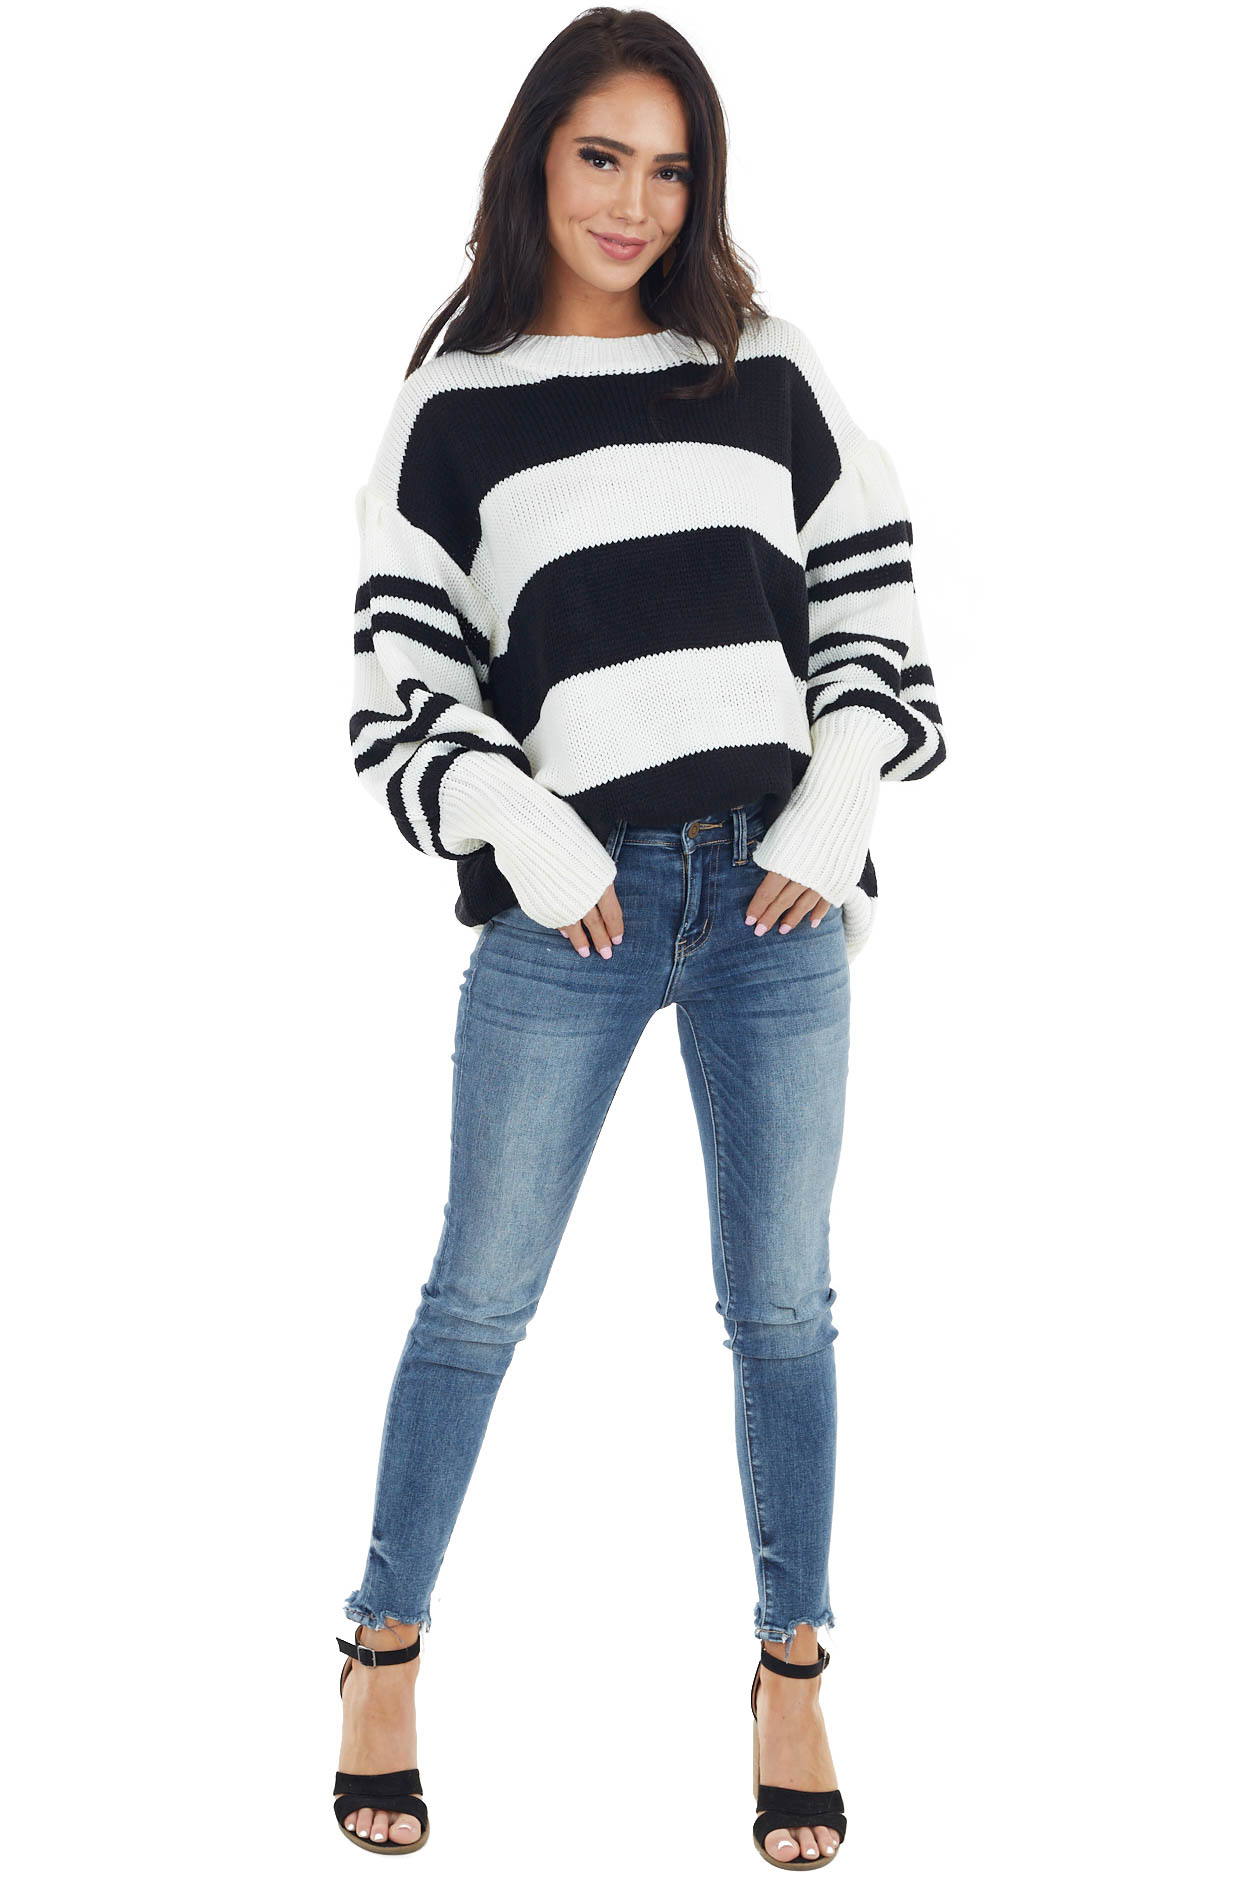 Ivory and Black Striped Long Balloon Sleeve Knit Sweater